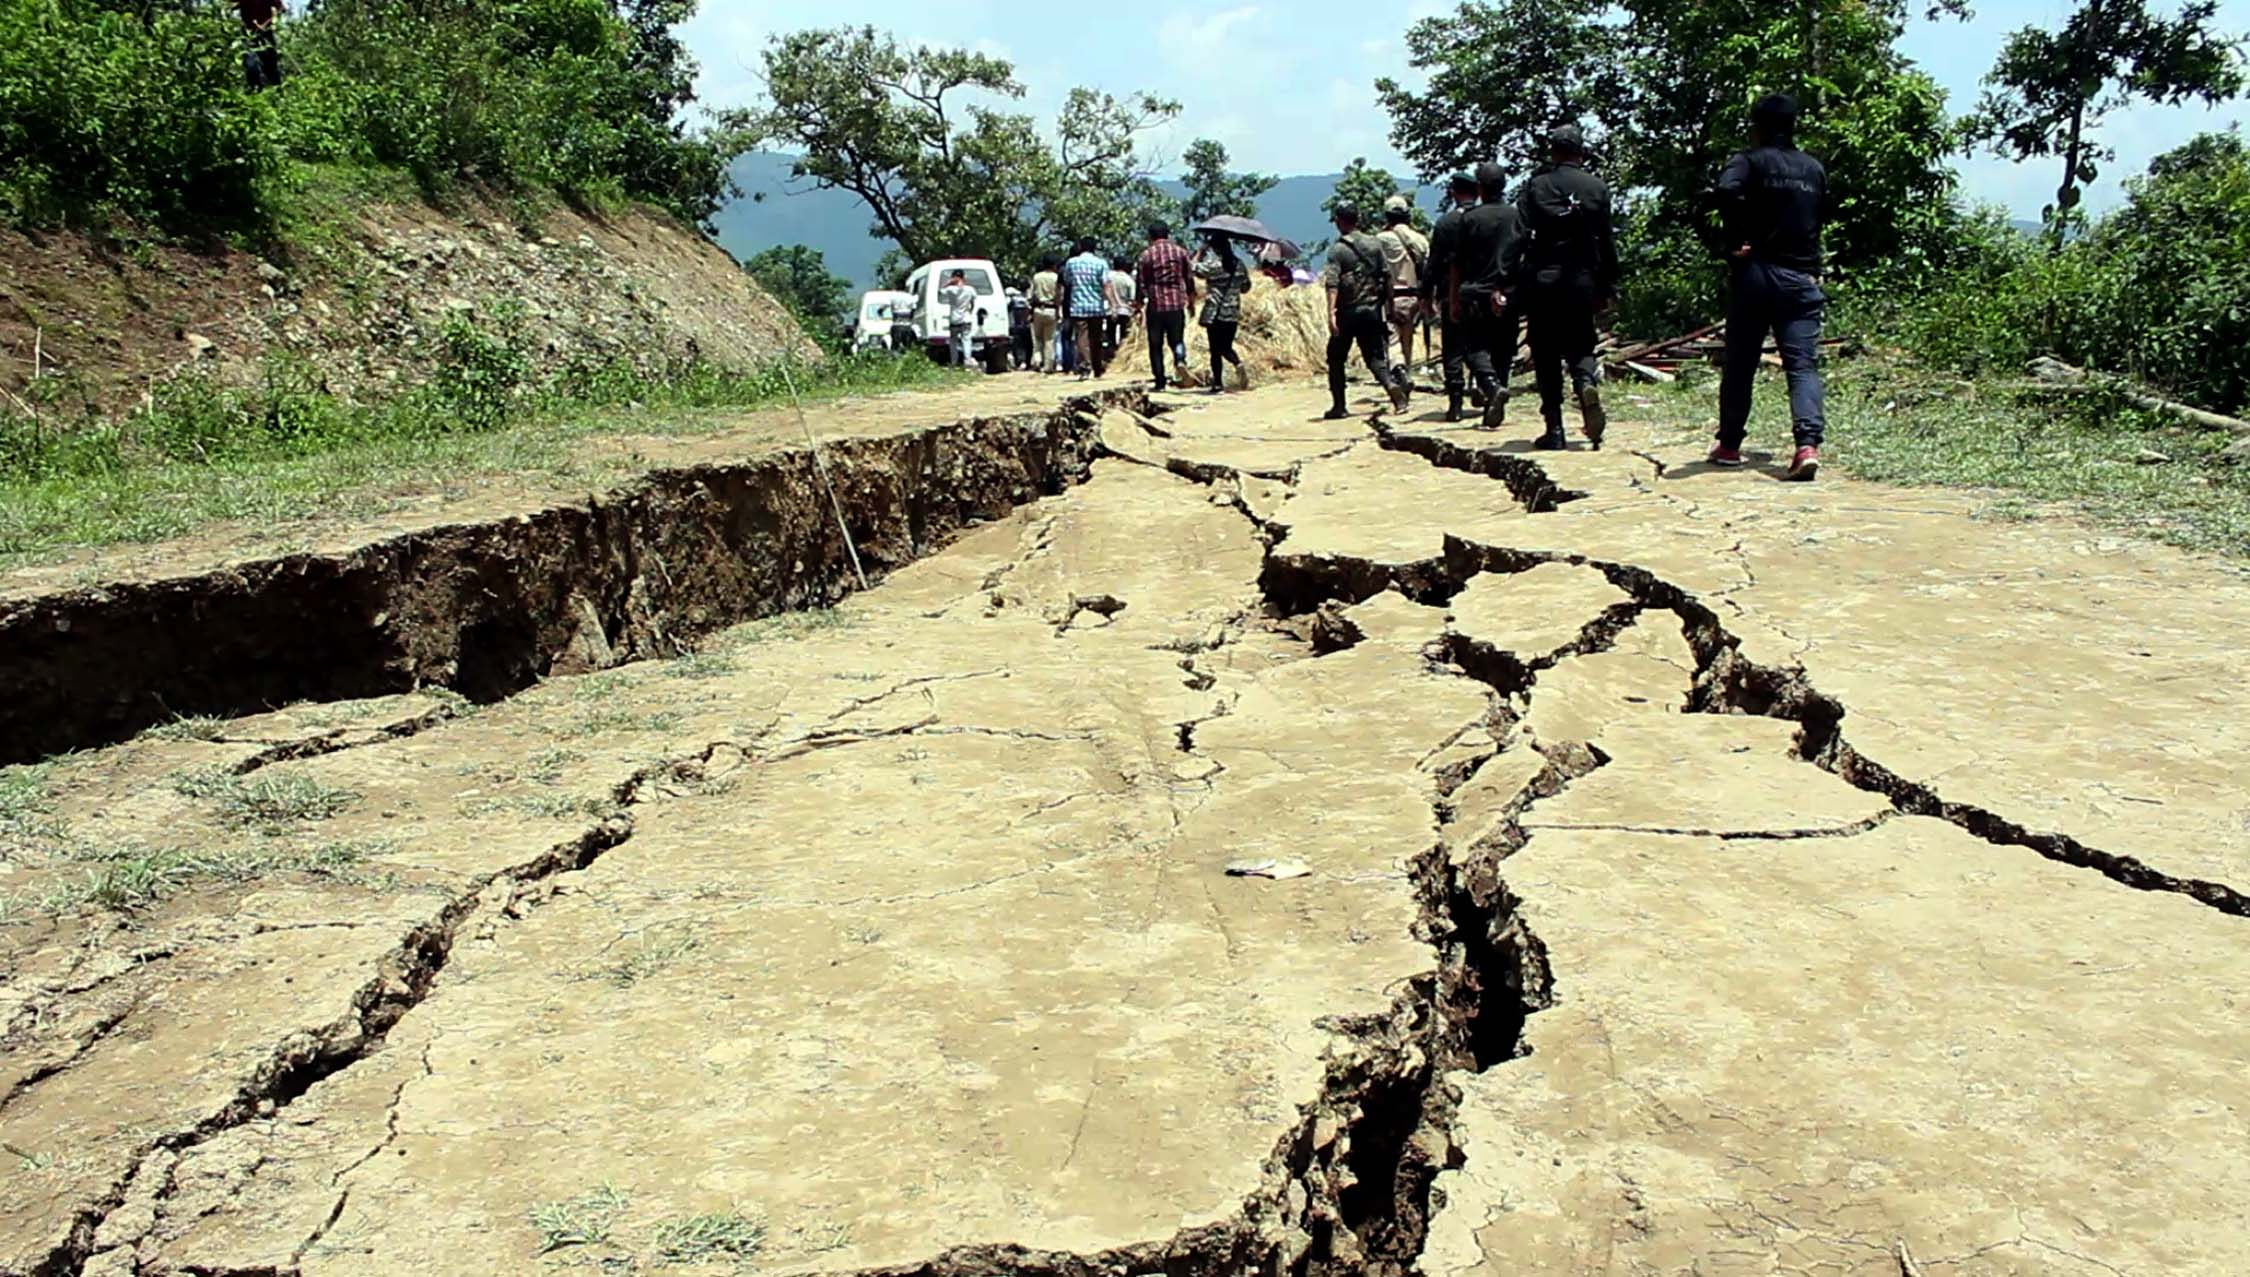 Earth cracks spread to the recently constructed Pradhan Mantri Gram Sadak Yojana Road.